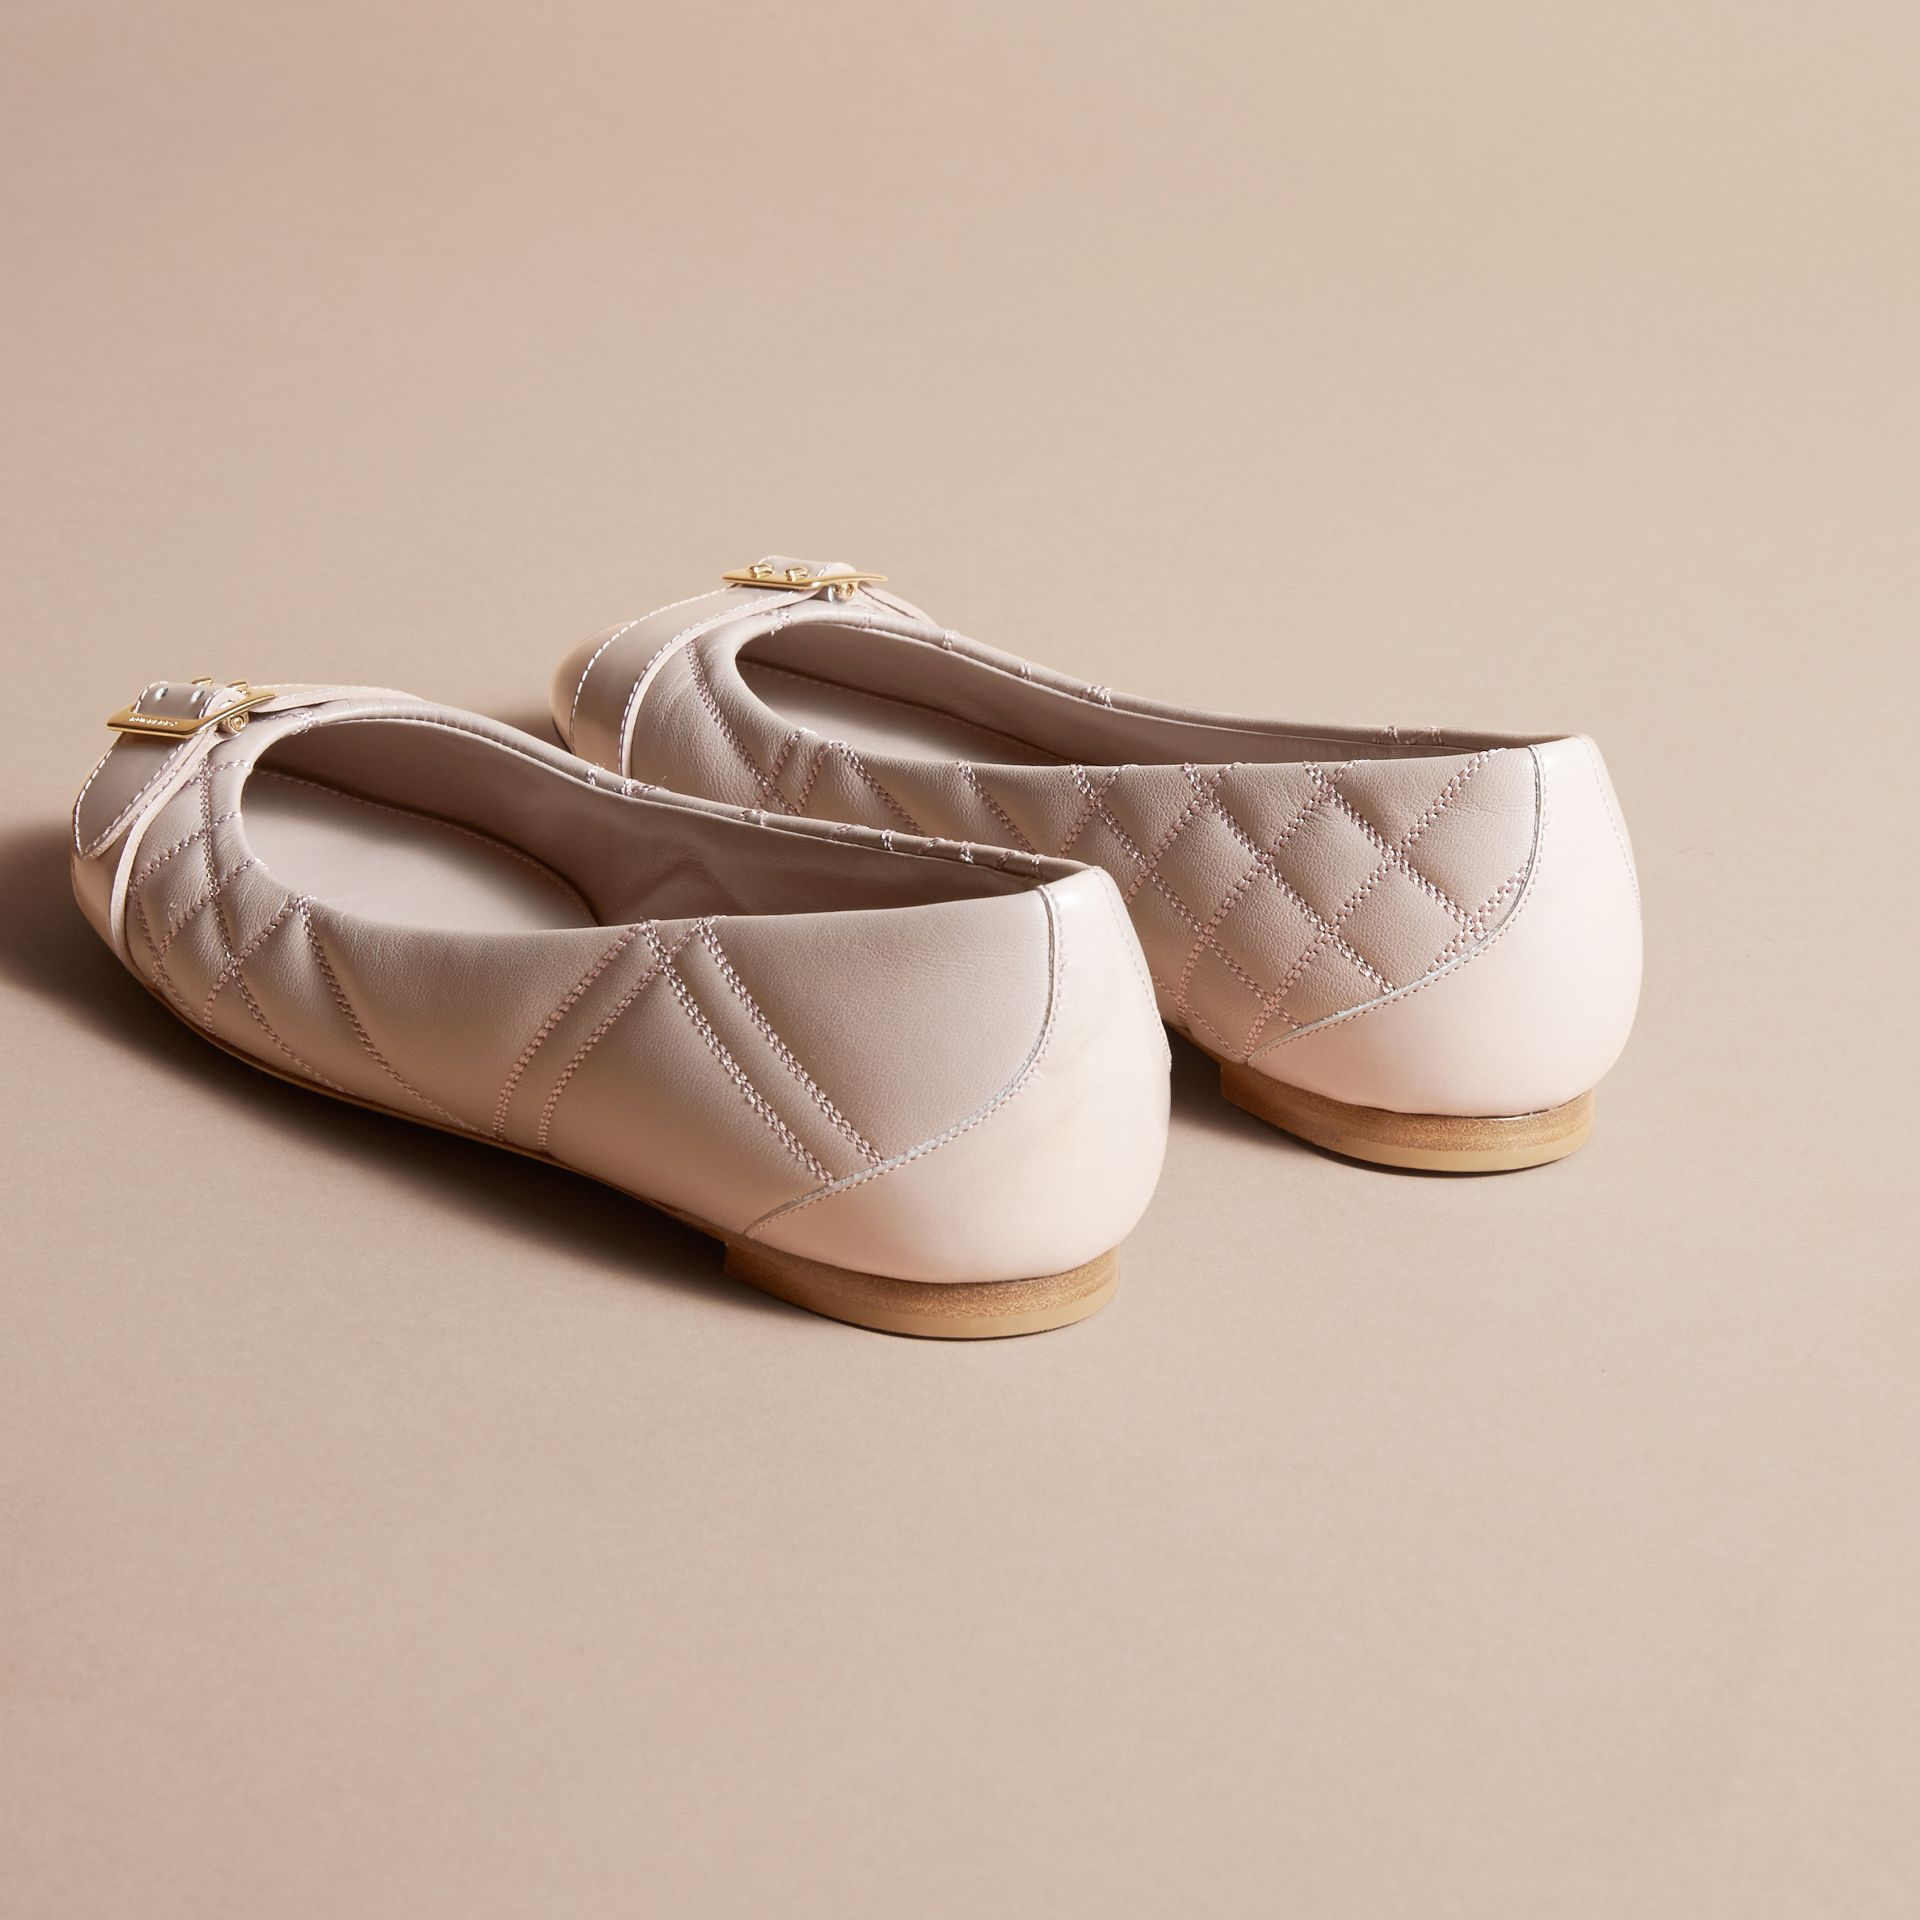 Buckle Detail Quilted Lambskin Leather Ballerinas in Ivory Pink - Women | Burberry Singapore - gallery image 4